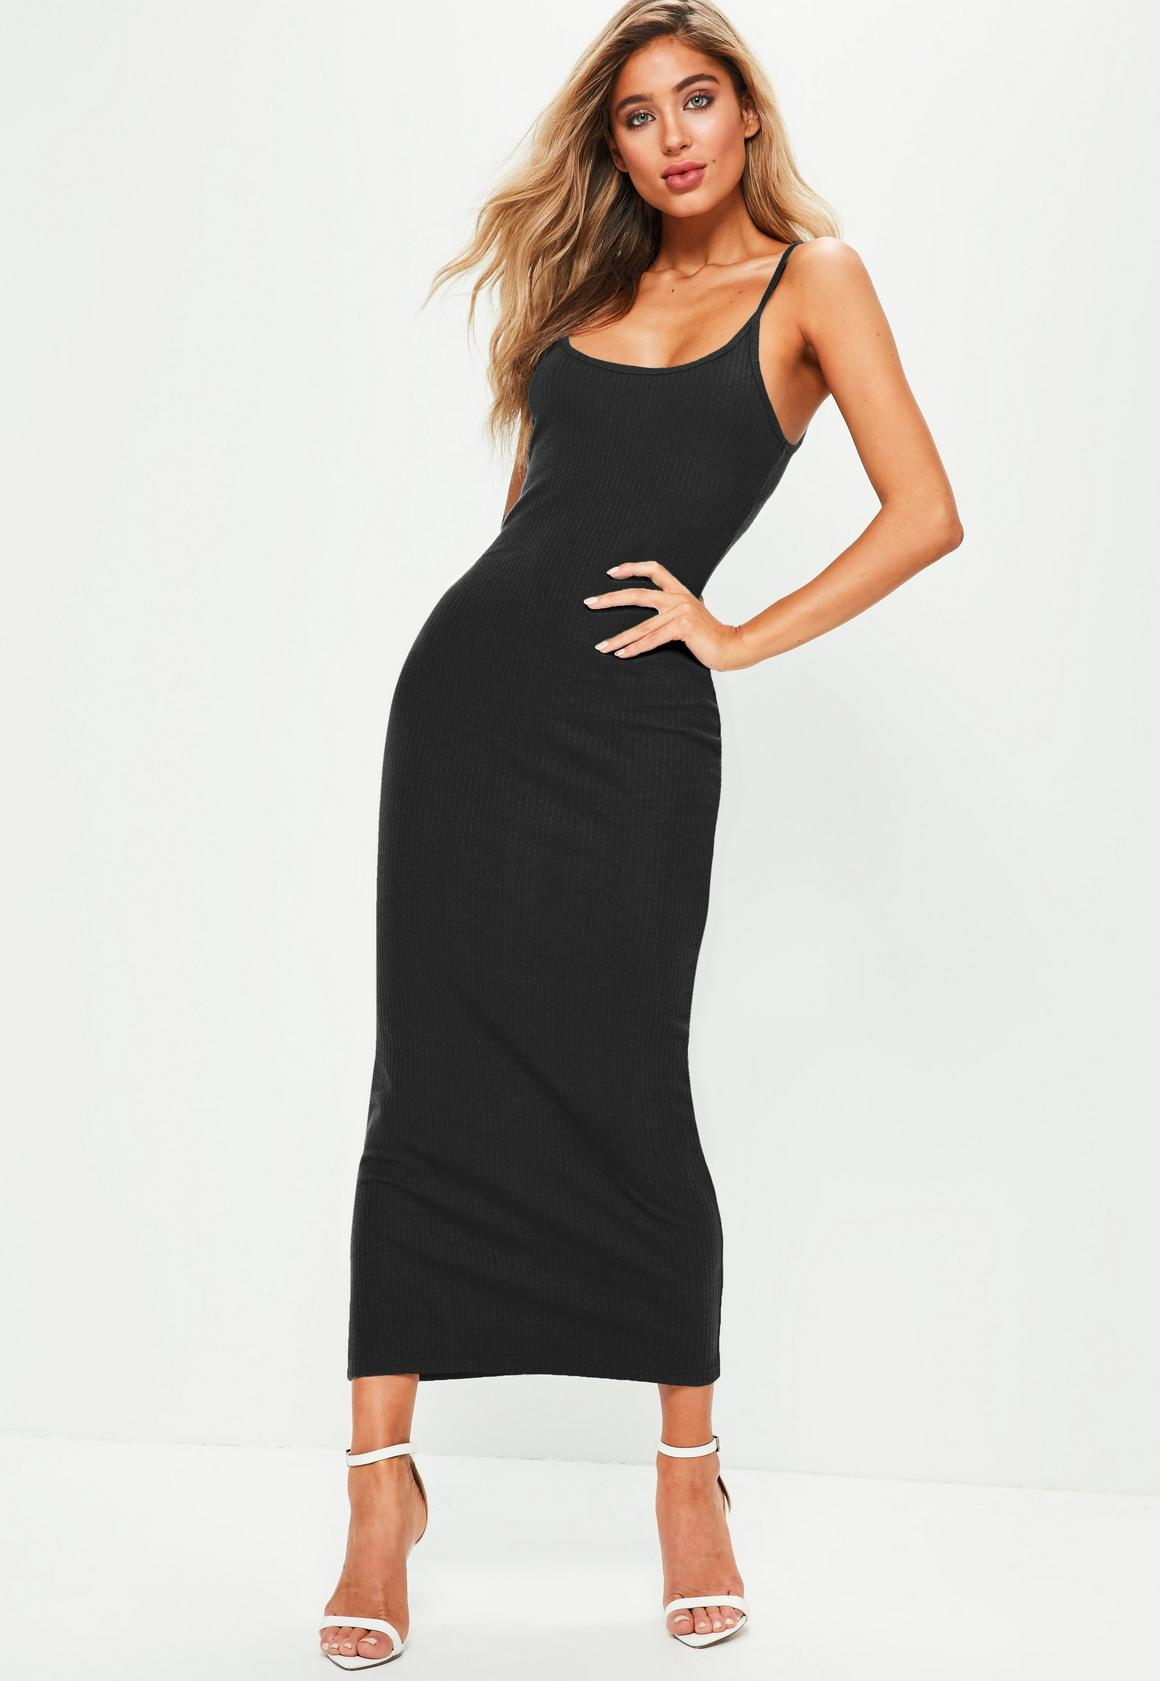 Maxi Dresses - Shop Maxi & Long Dresses | Missguided